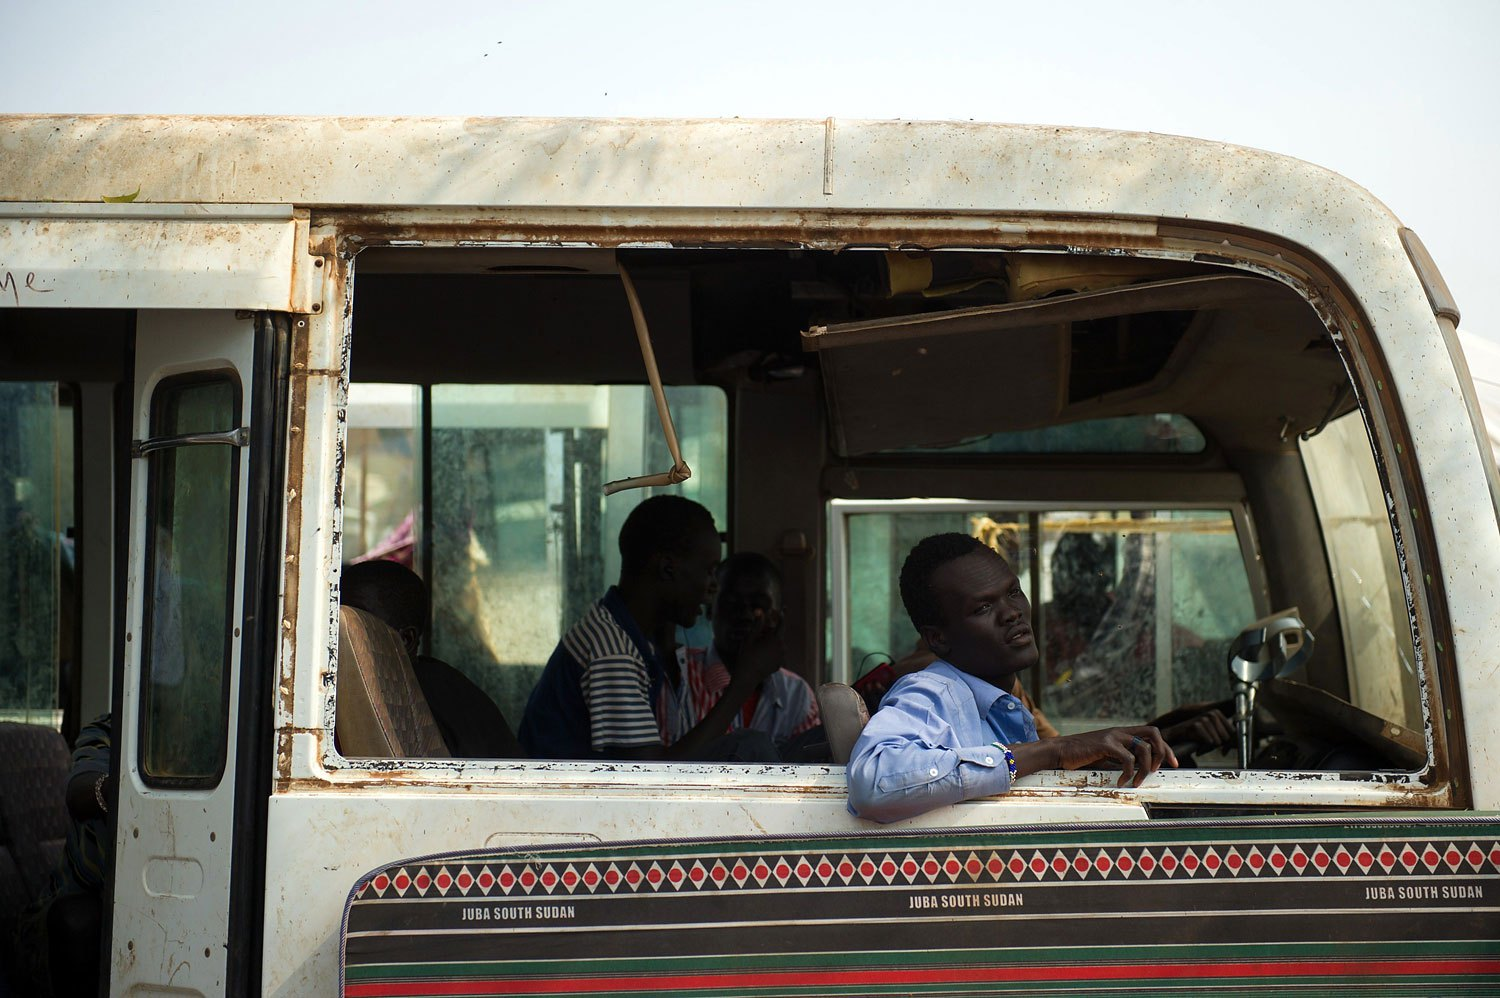 A South Sudanese man sits in the shell of an old bus in a spontaneous camp for internally displaced persons at the United Nations Mission to South Sudan base in Juba, South Sudan, on Jan. 9, 2014.